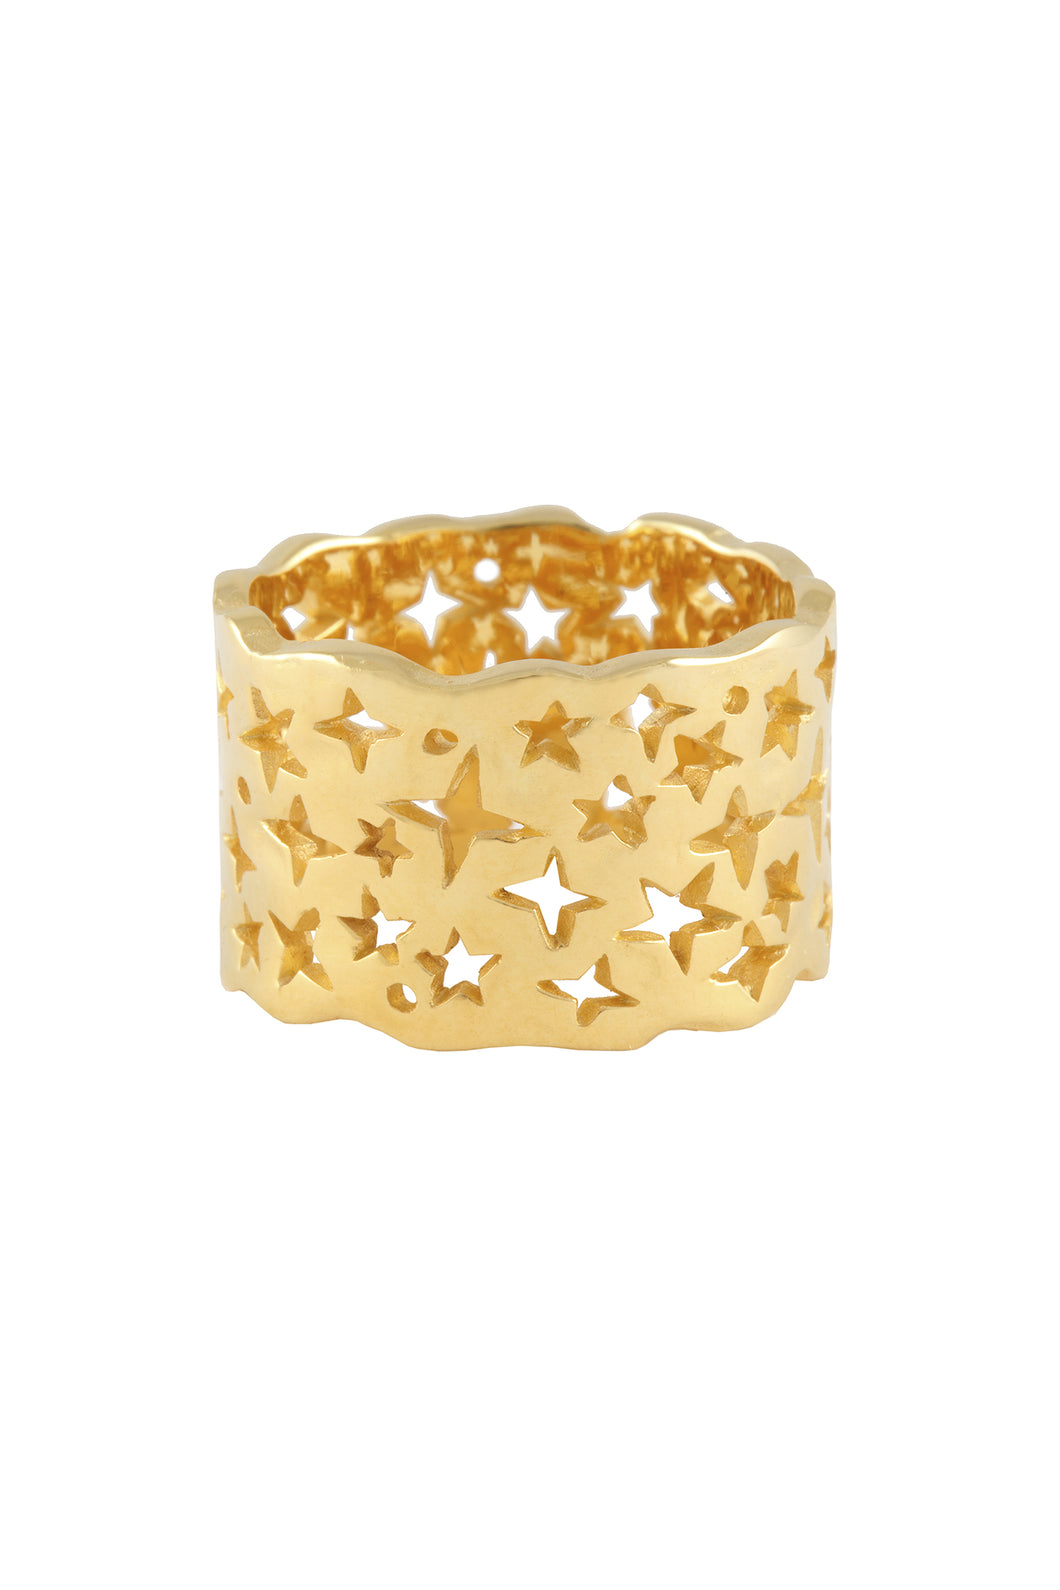 Milky way ring. Silver, gold plated